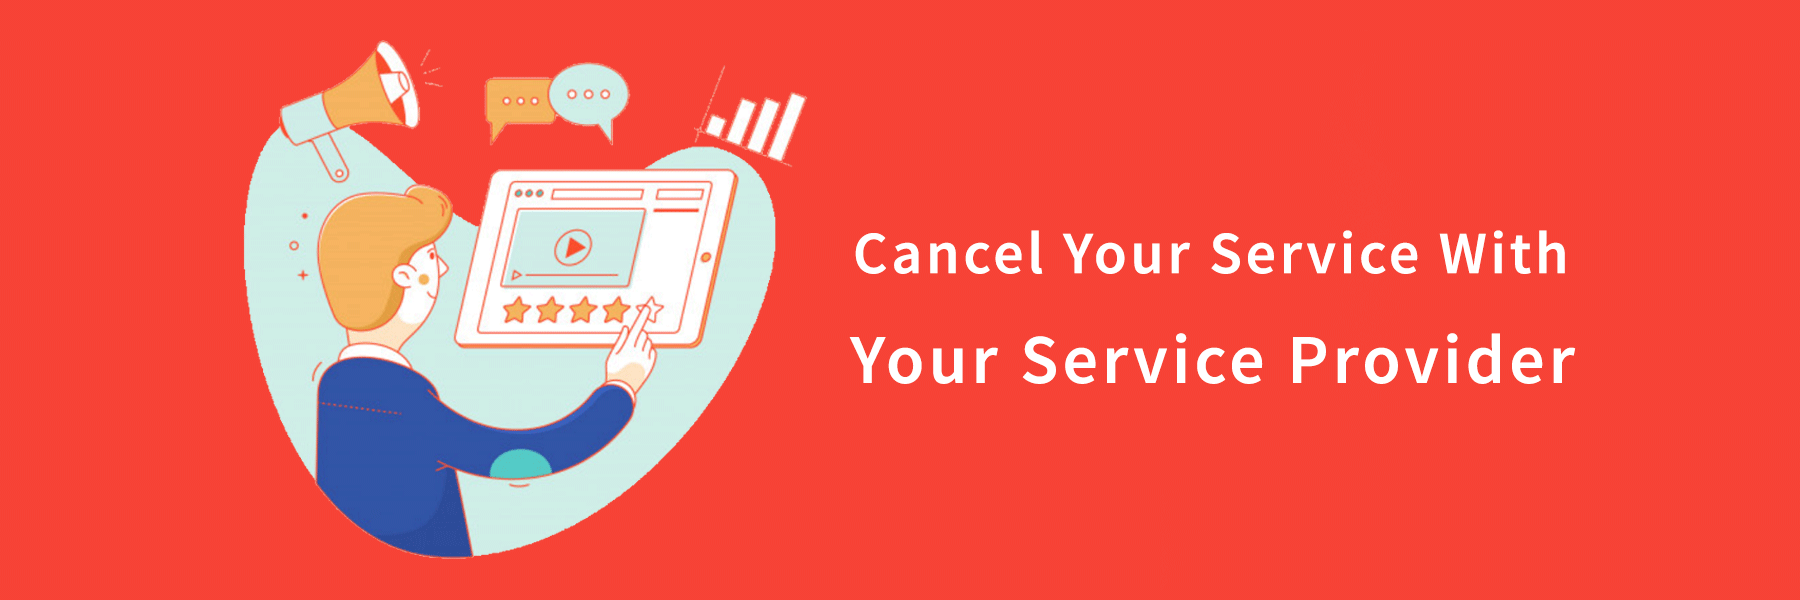 Professional Advisor - Know How To Cancel Anything - HowTo-Cancel